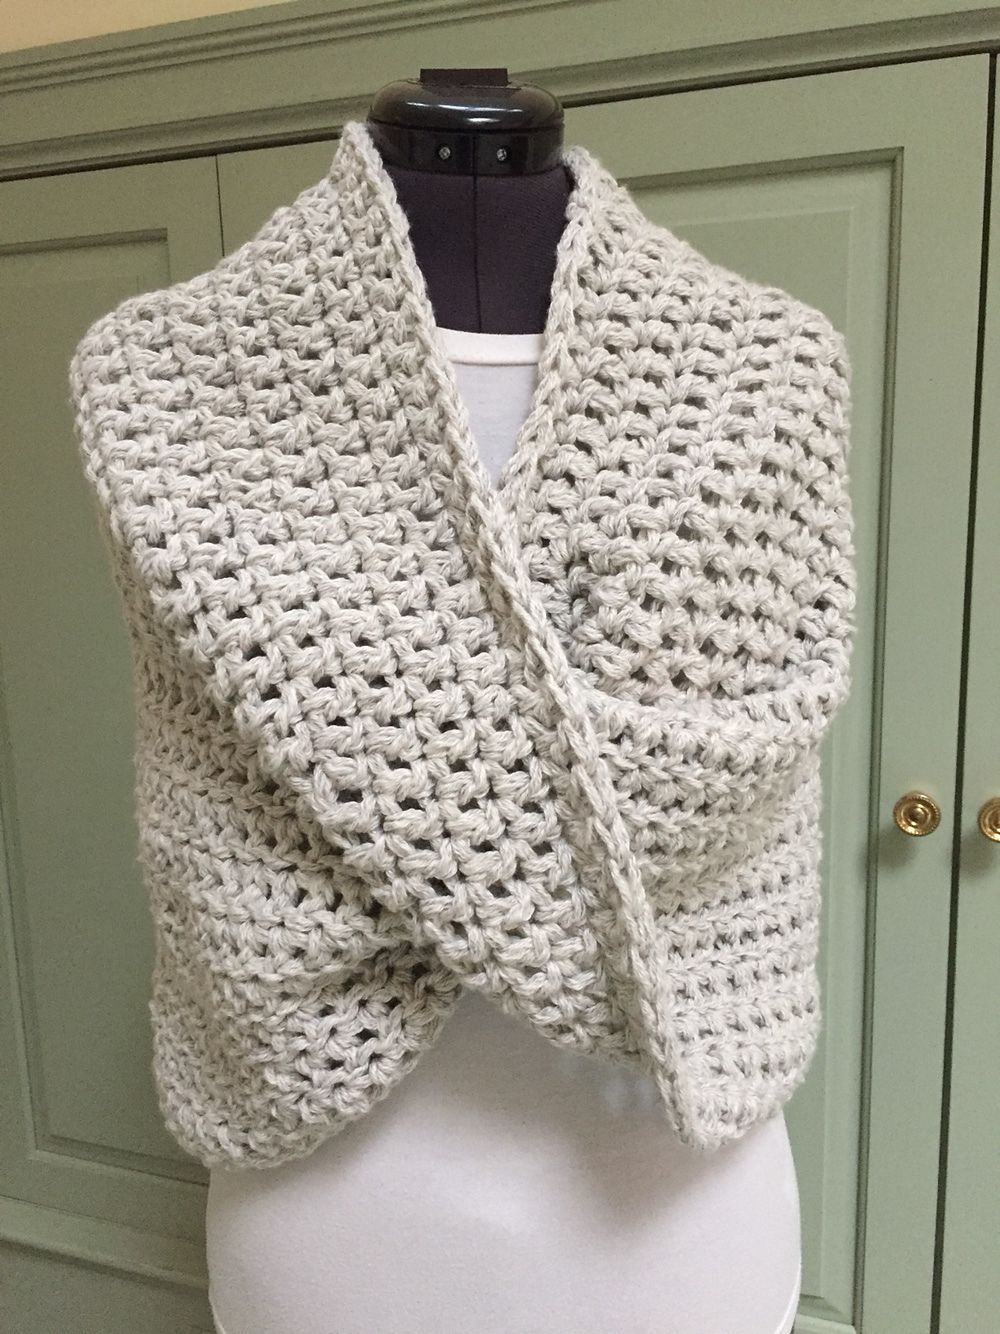 Ravelry: Mobius Shawl Wrap by Naztazia | DIY and crafts | Pinterest ...